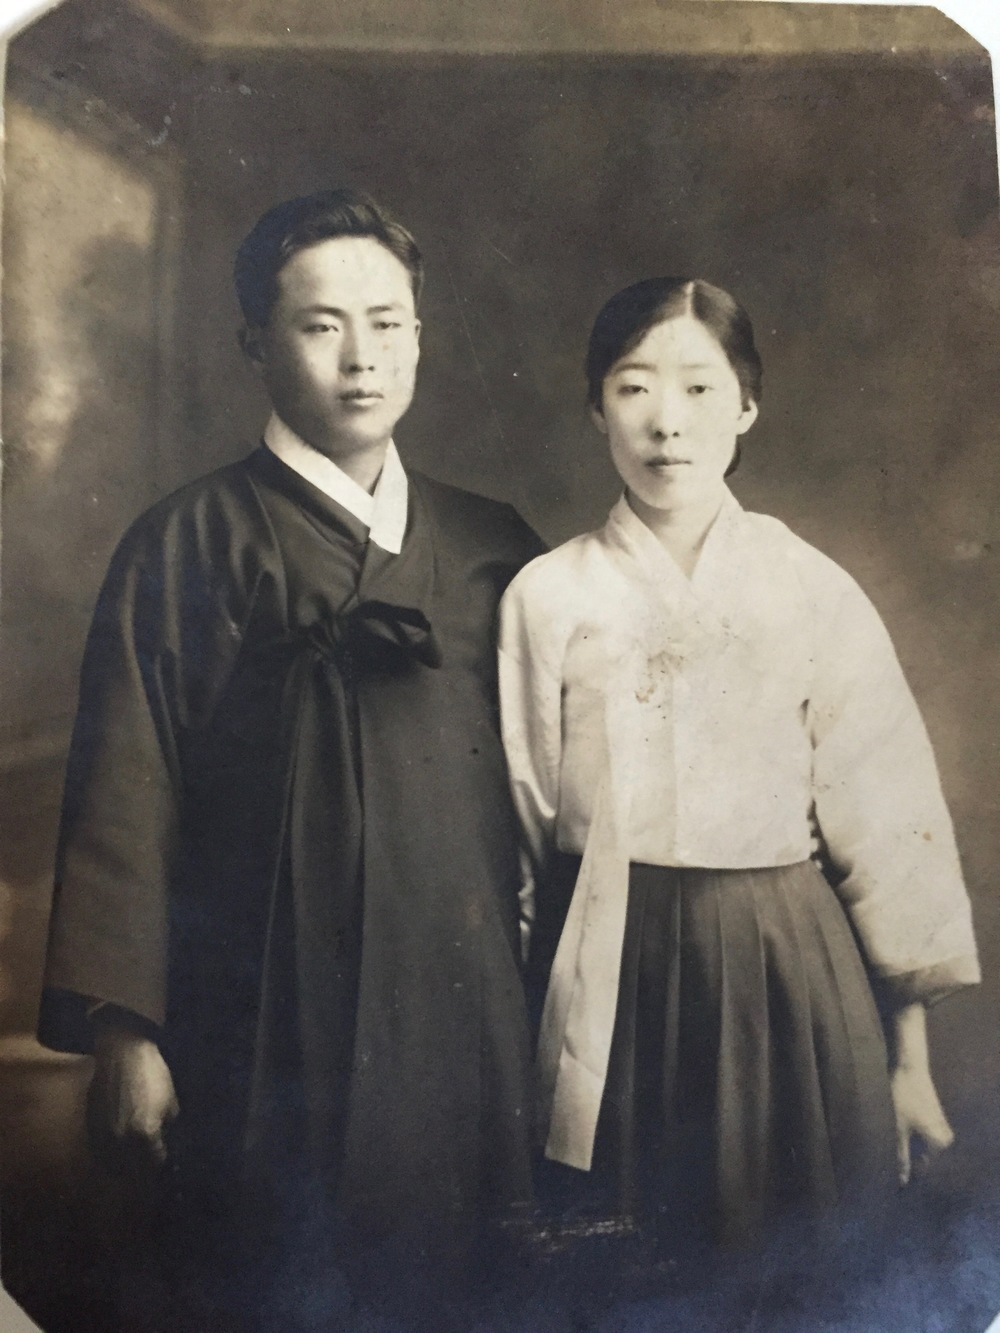 Kook Dong Pae's parents on their wedding day